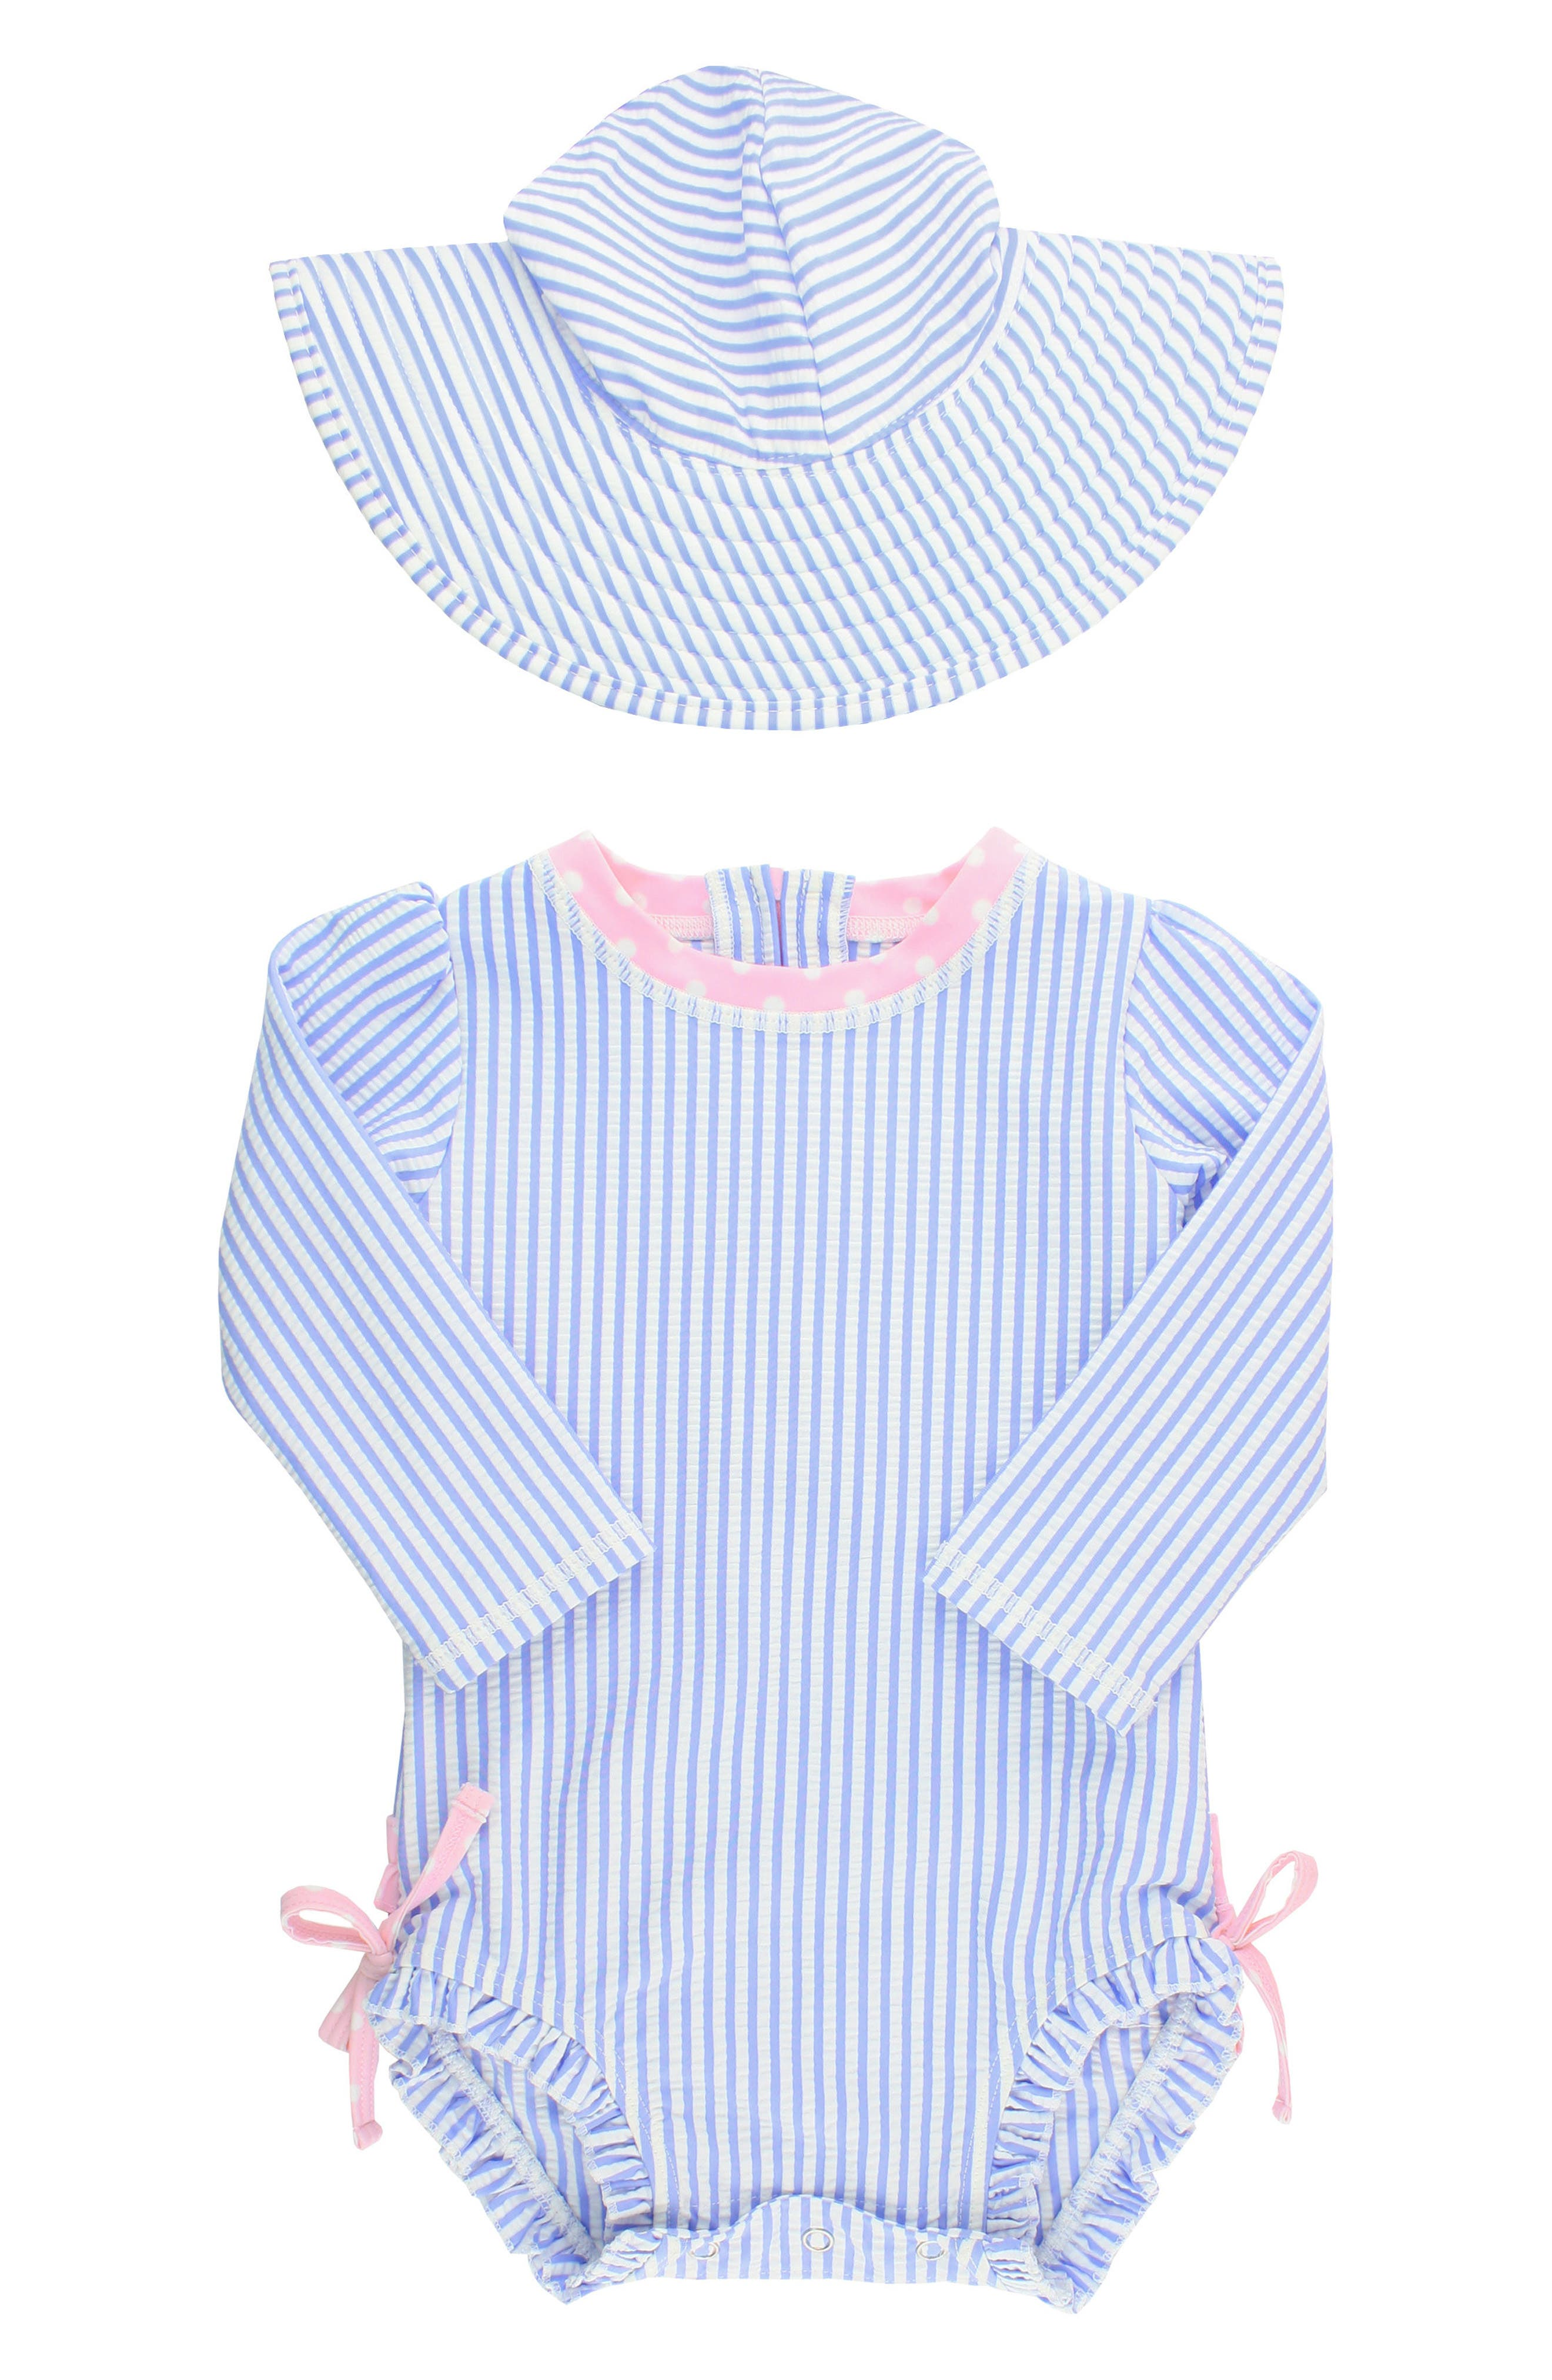 Seersucker stripes and polka-dot pink ruffles define a rashguard swimsuit paired with a striped bucket hat for extra sun protection. Style Name: Rufflebutts Seersucker One-Piece Rashguard Swimsuit & Hat Set (Baby). Style Number: 5598201. Available in stores.